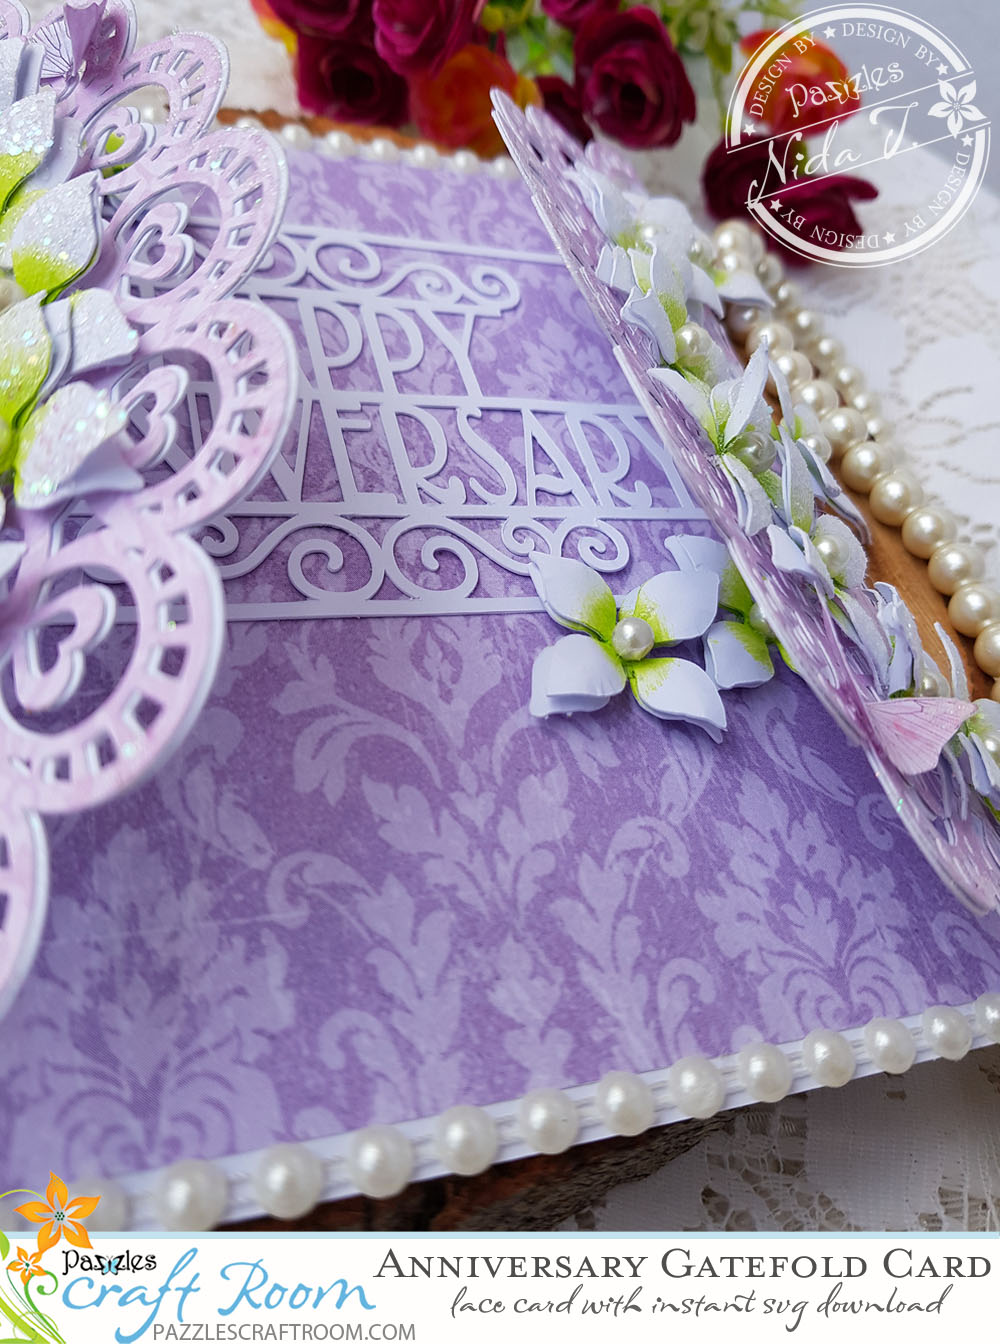 Pazzles DIY Anniversary Lace Gatefold Card by Nida Tanweer